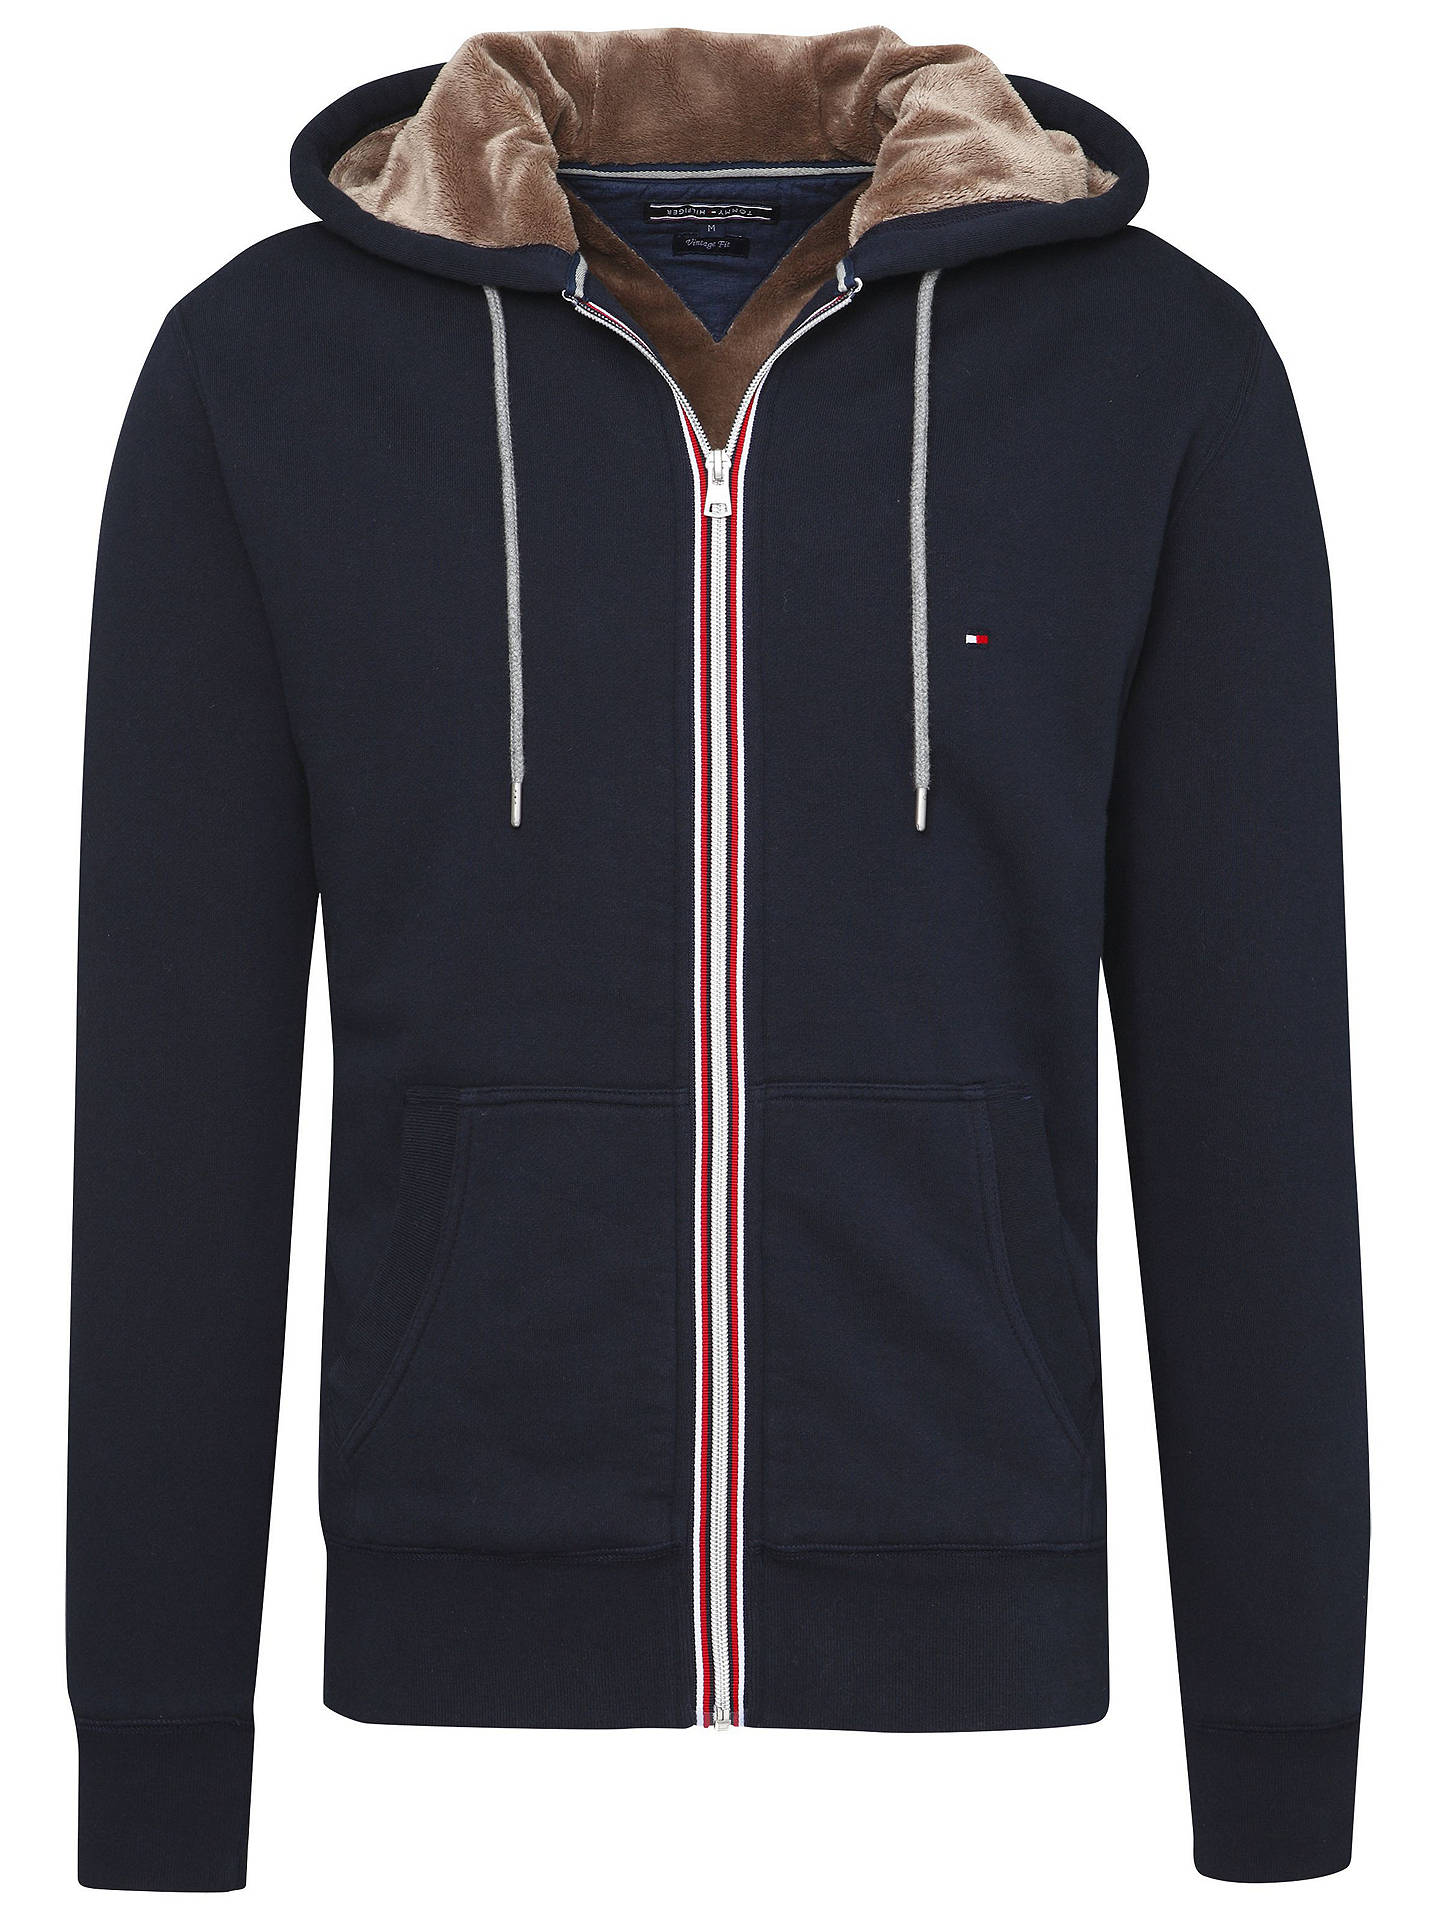 107332b2cbaba ... Brands like Ted Baker new cheap 28c26 76226  BuyTommy Hilfiger Sasha  Zip Up Hoodie